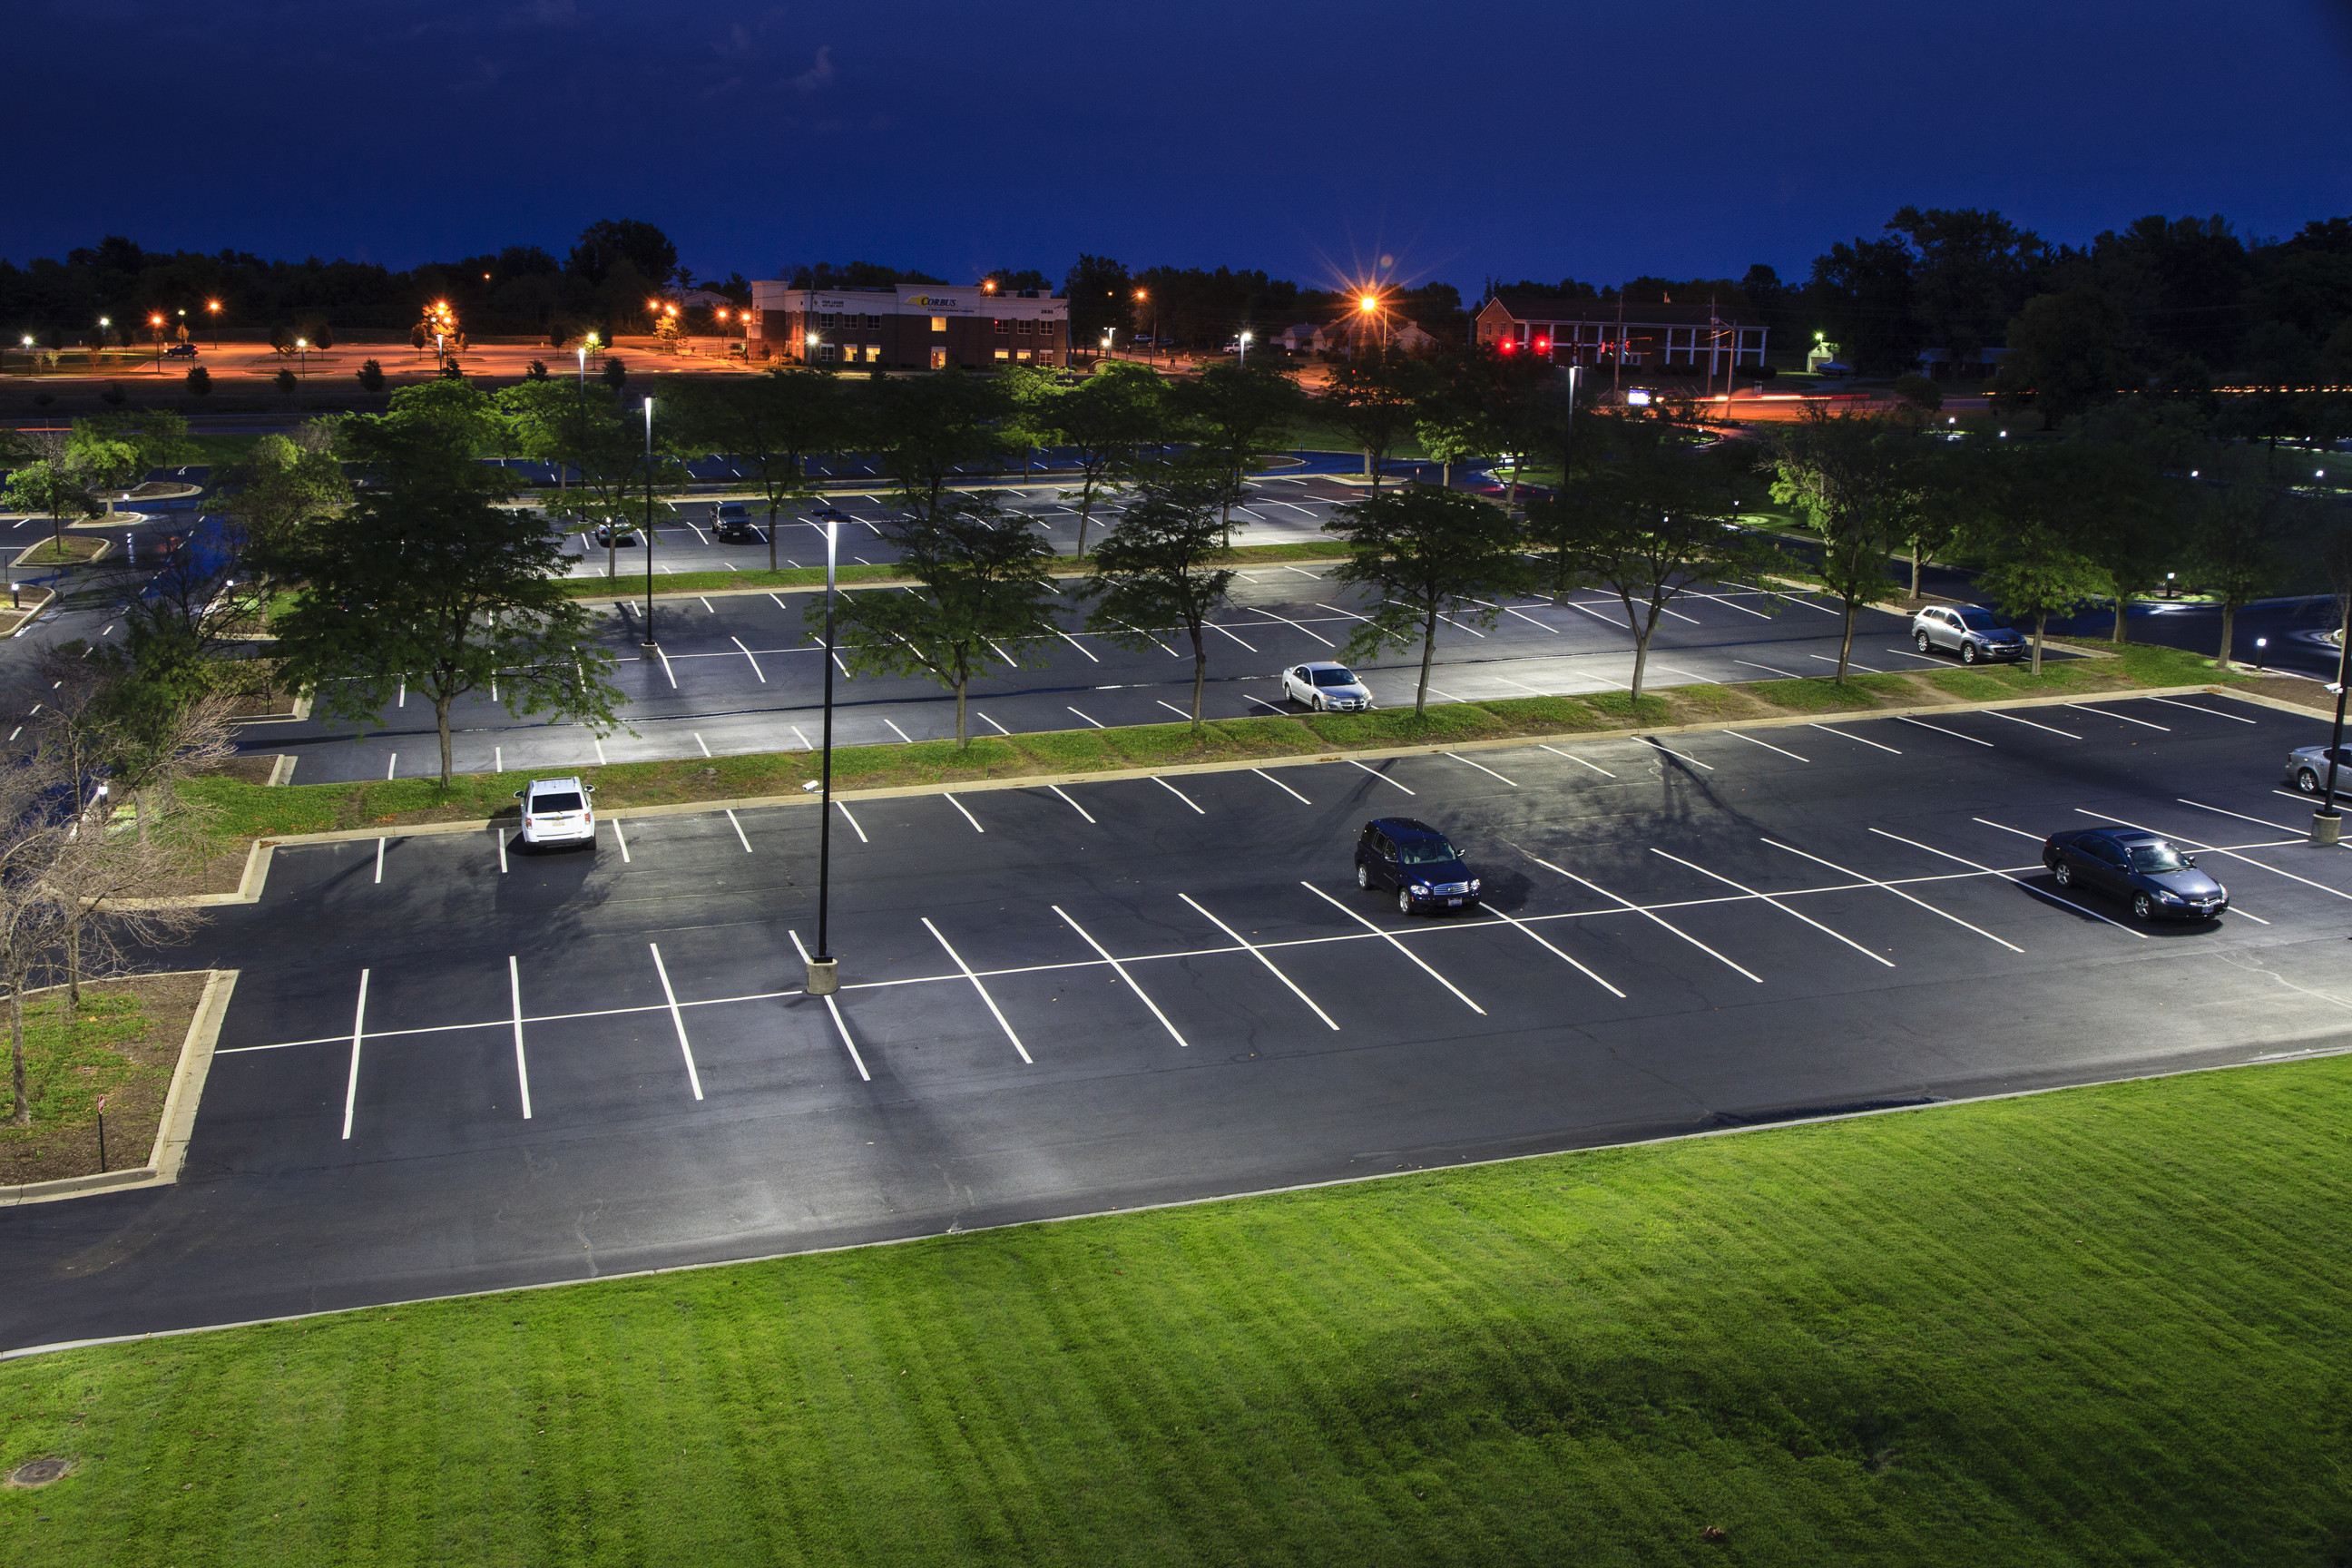 Ge outdoor and office lighting solutions will save metlife nearly after upgrade led outdoor lighting aloadofball